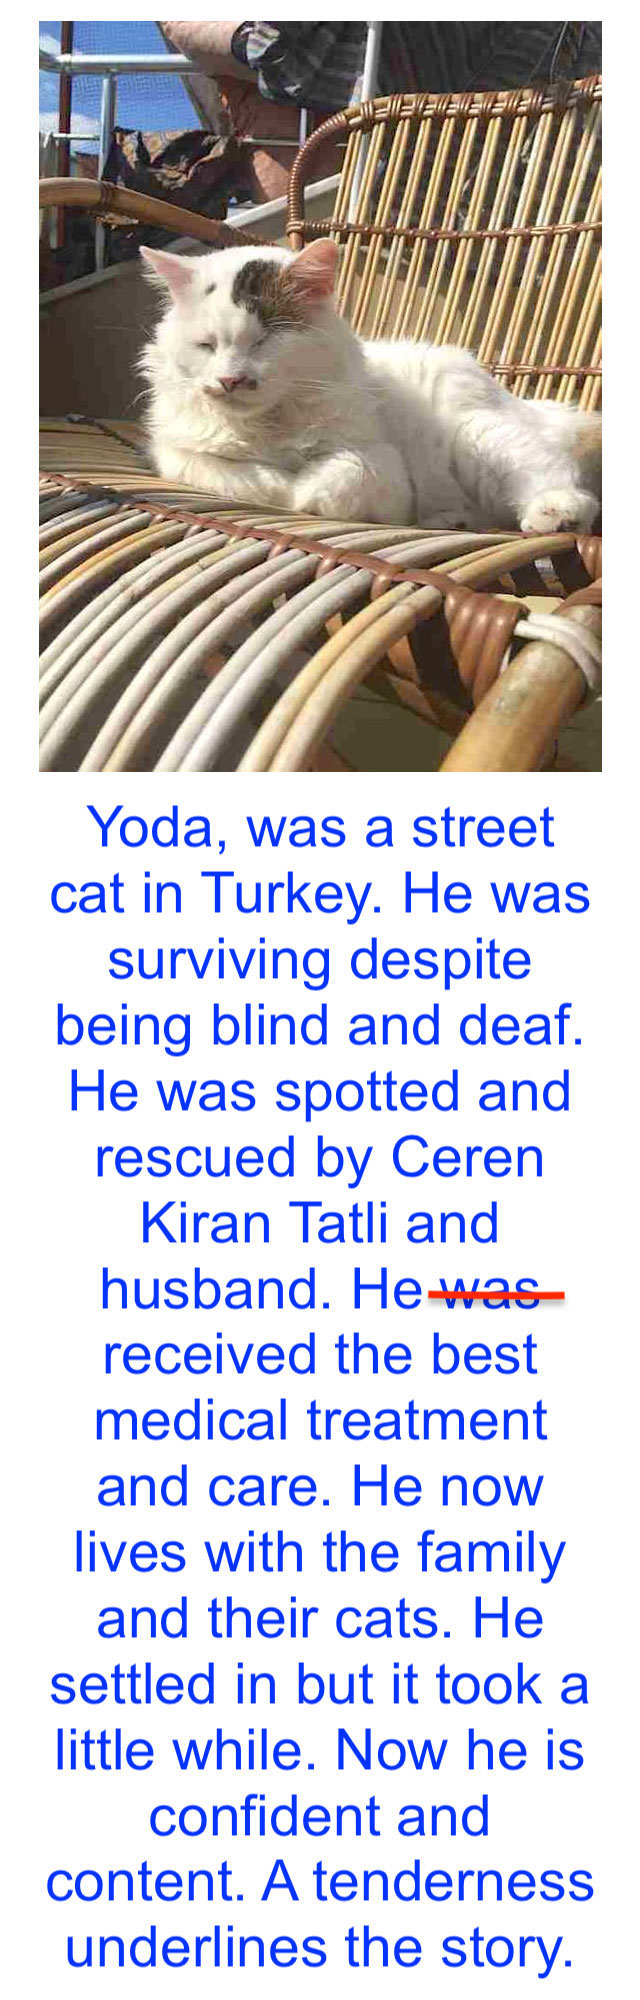 Yoda a former street cat is blind and deaf